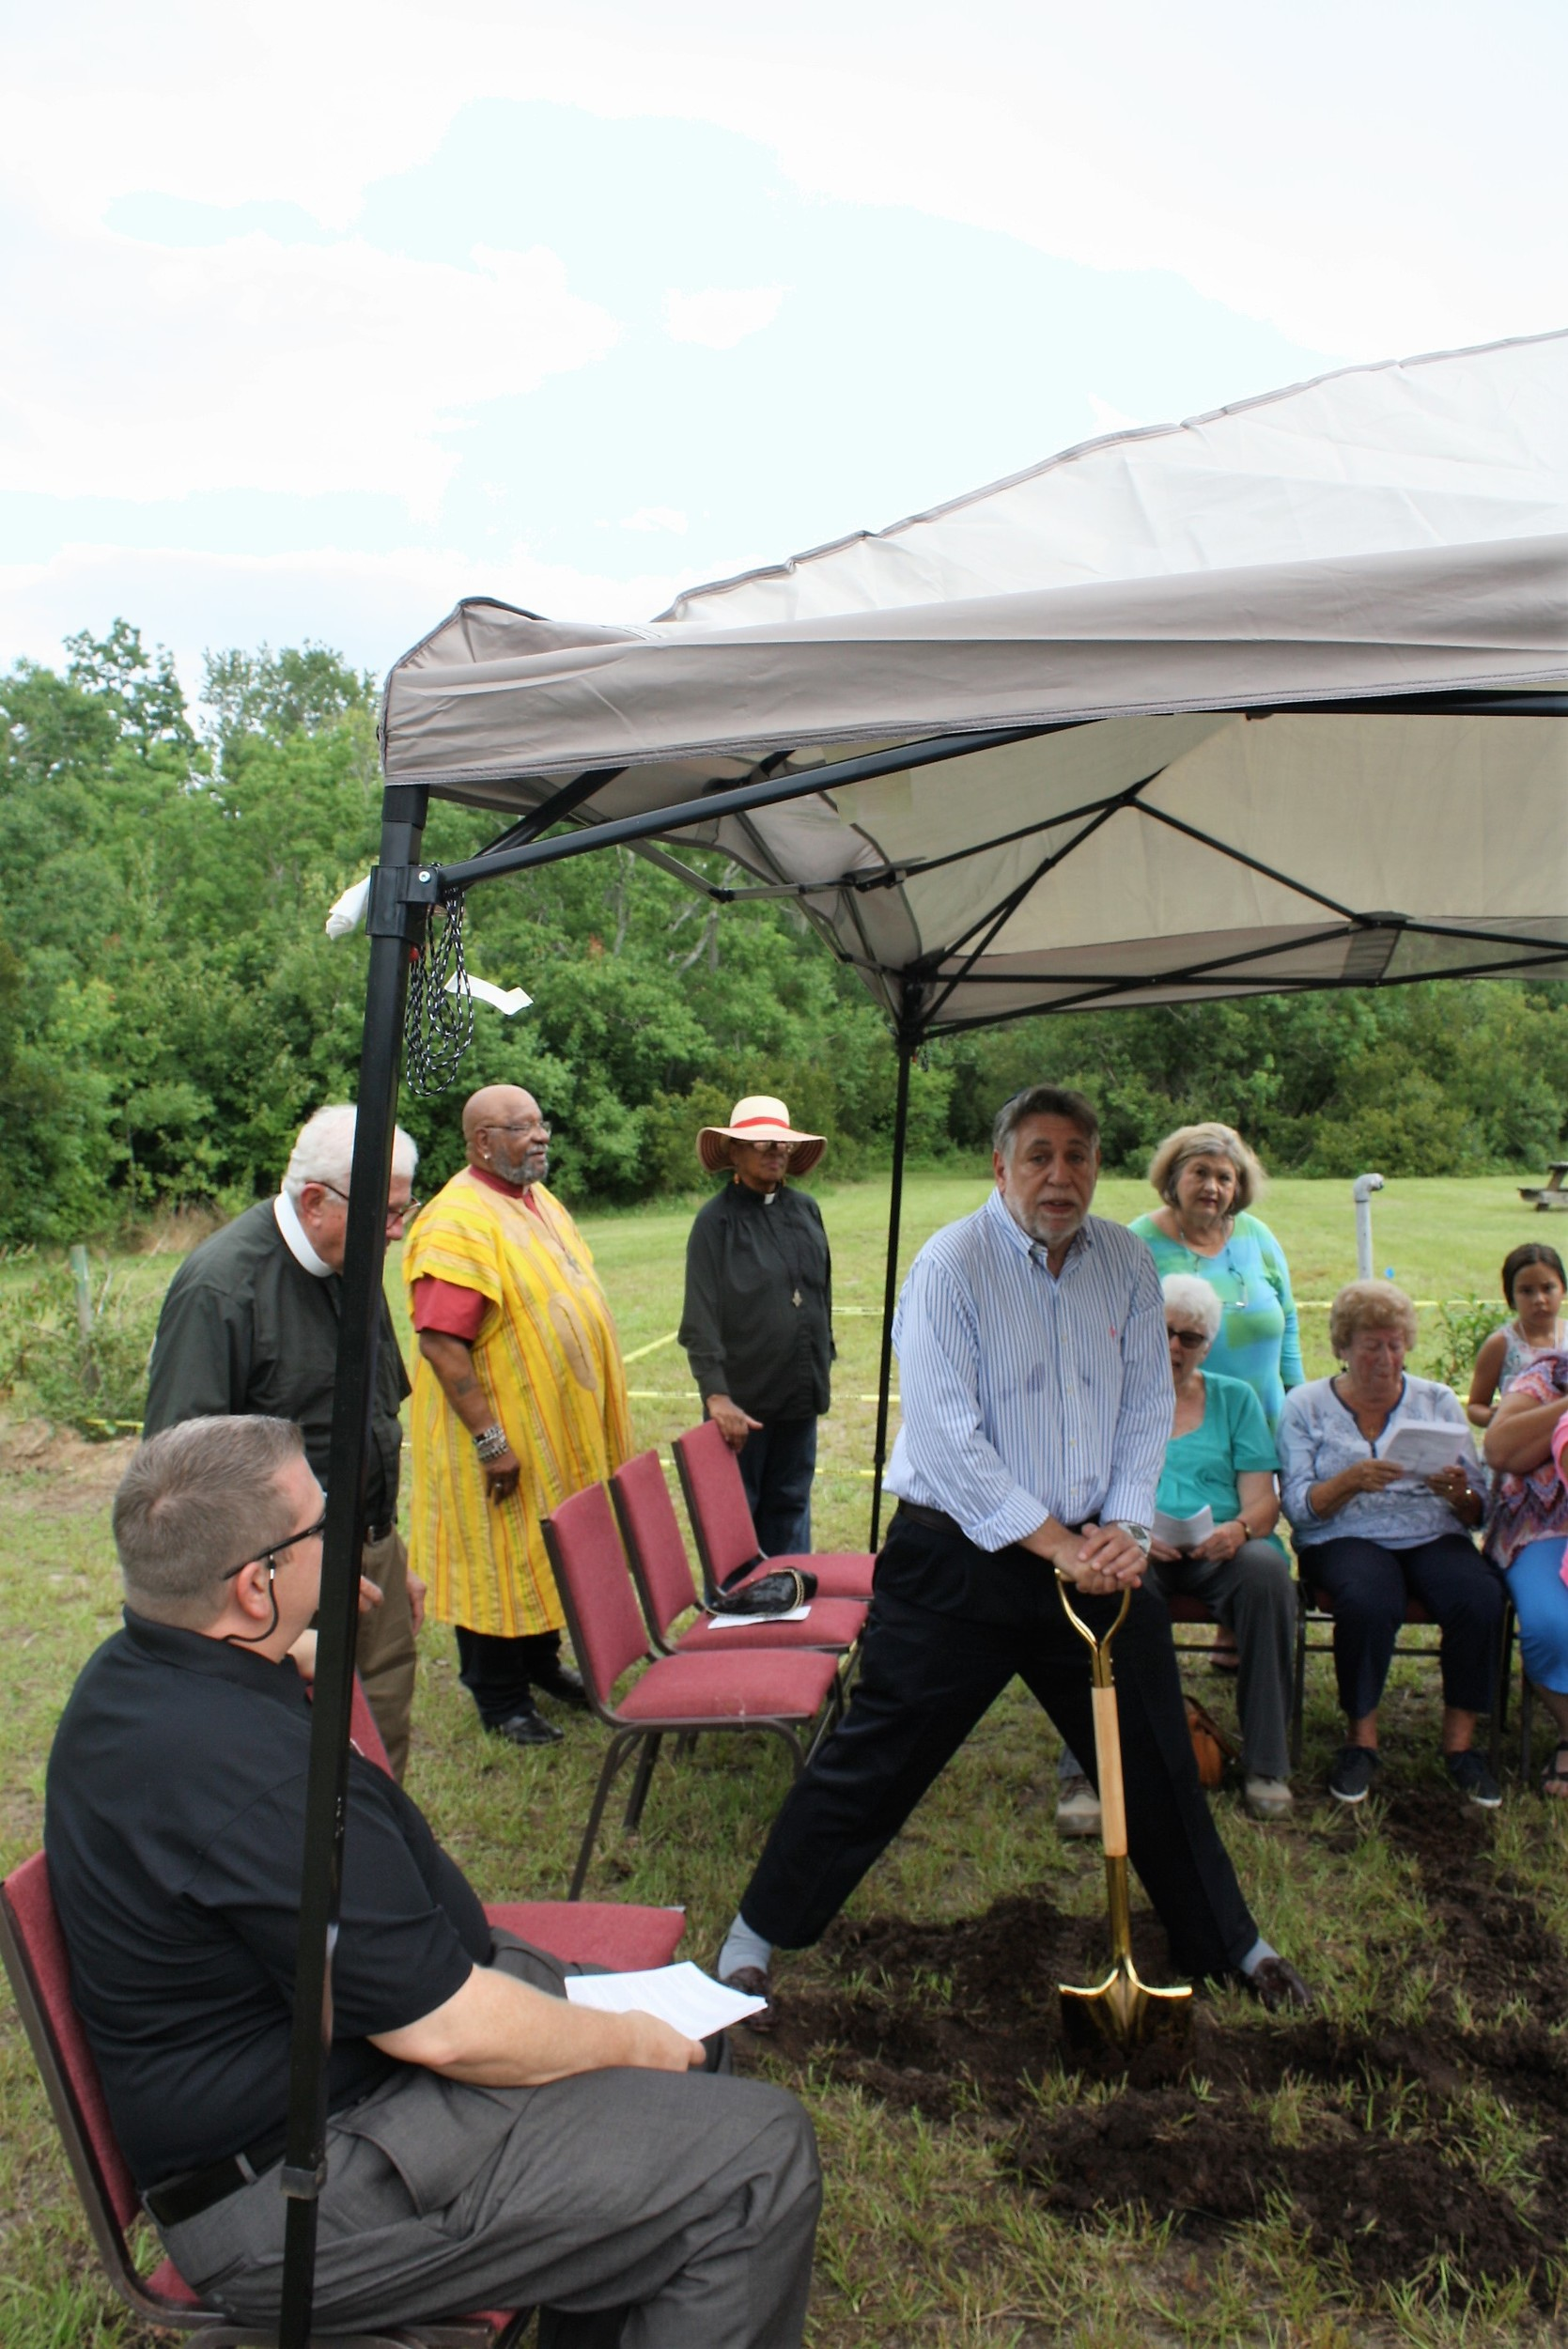 Rabbi Michael Matuson of Beth El at the Beaches offers a Hebrew blessing at the ground breaking ceremony.